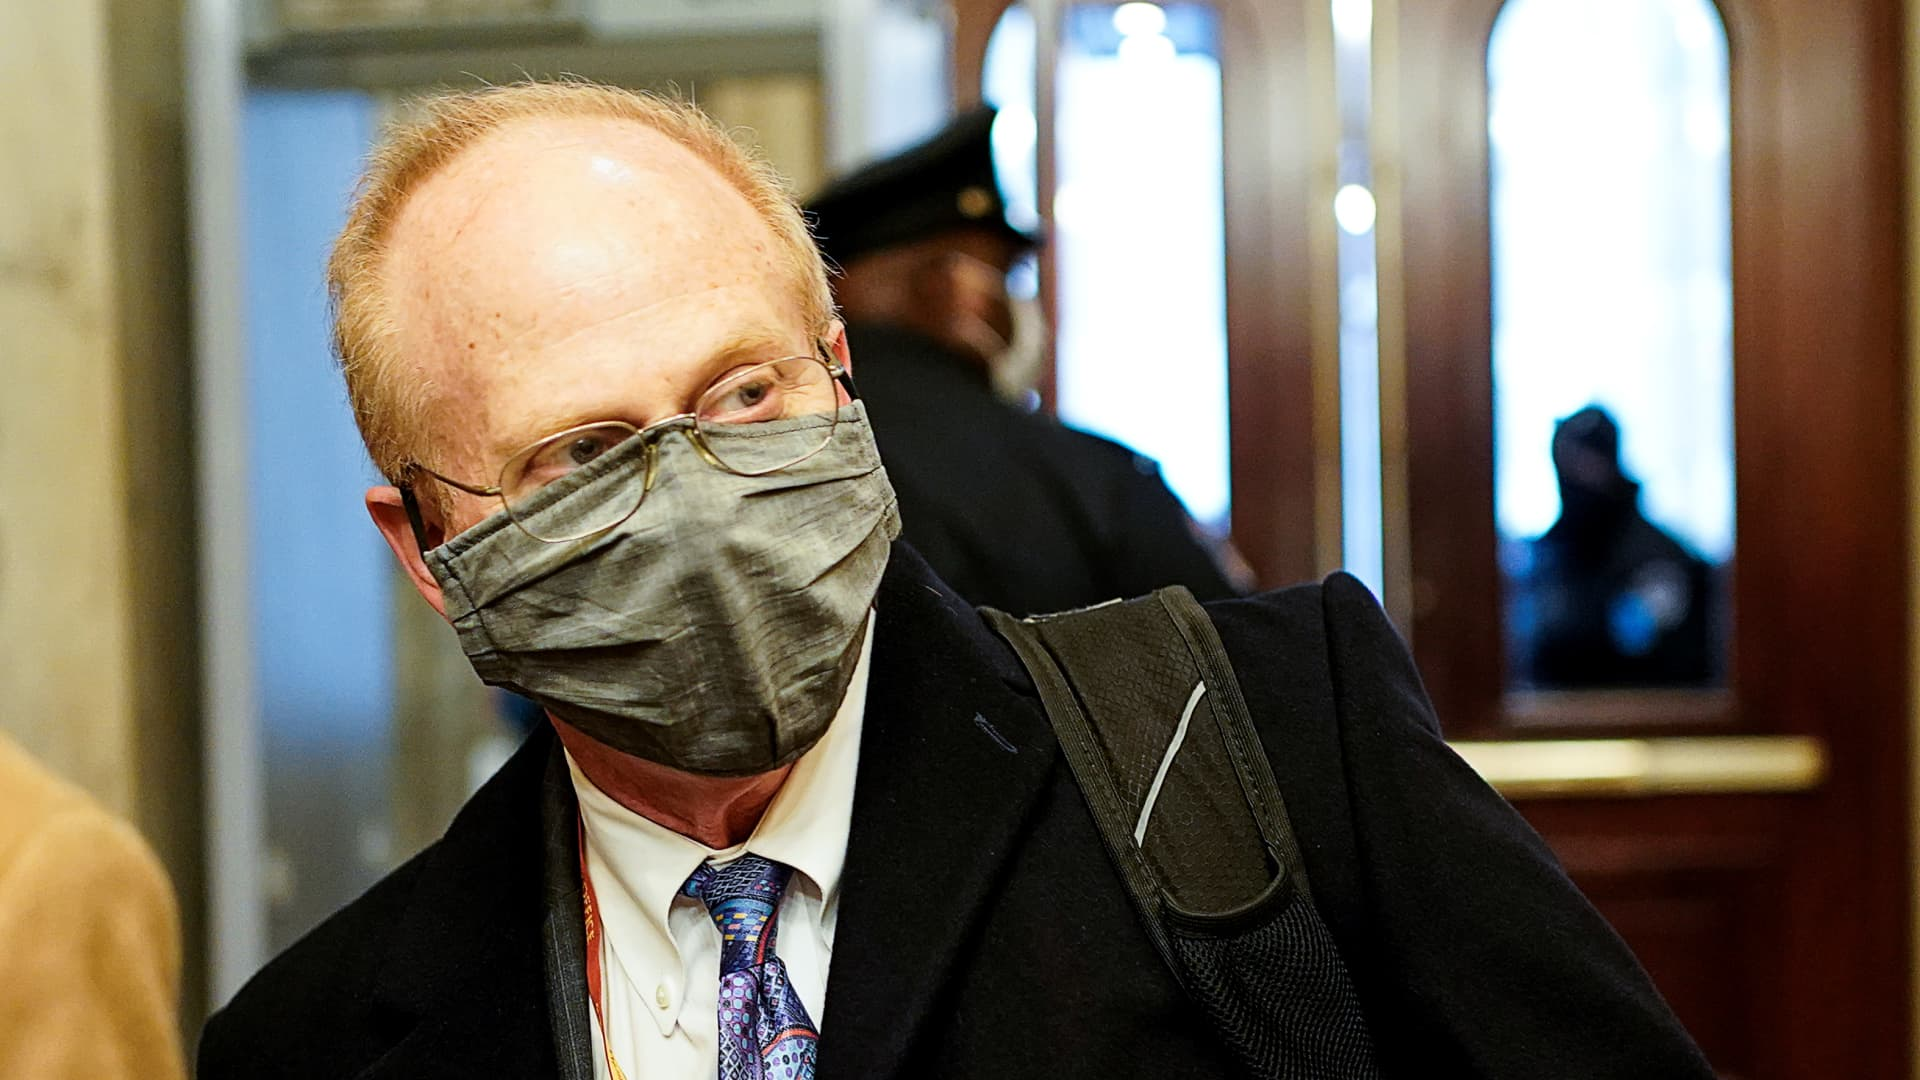 Trump attorney David Schoen arrives prior to the start of opening arguments in the impeachment trial of former U.S. President Donald Trump, on charges of inciting the deadly attack on the U.S. Capitol, on Capitol Hill in Washington, February 10, 2021.